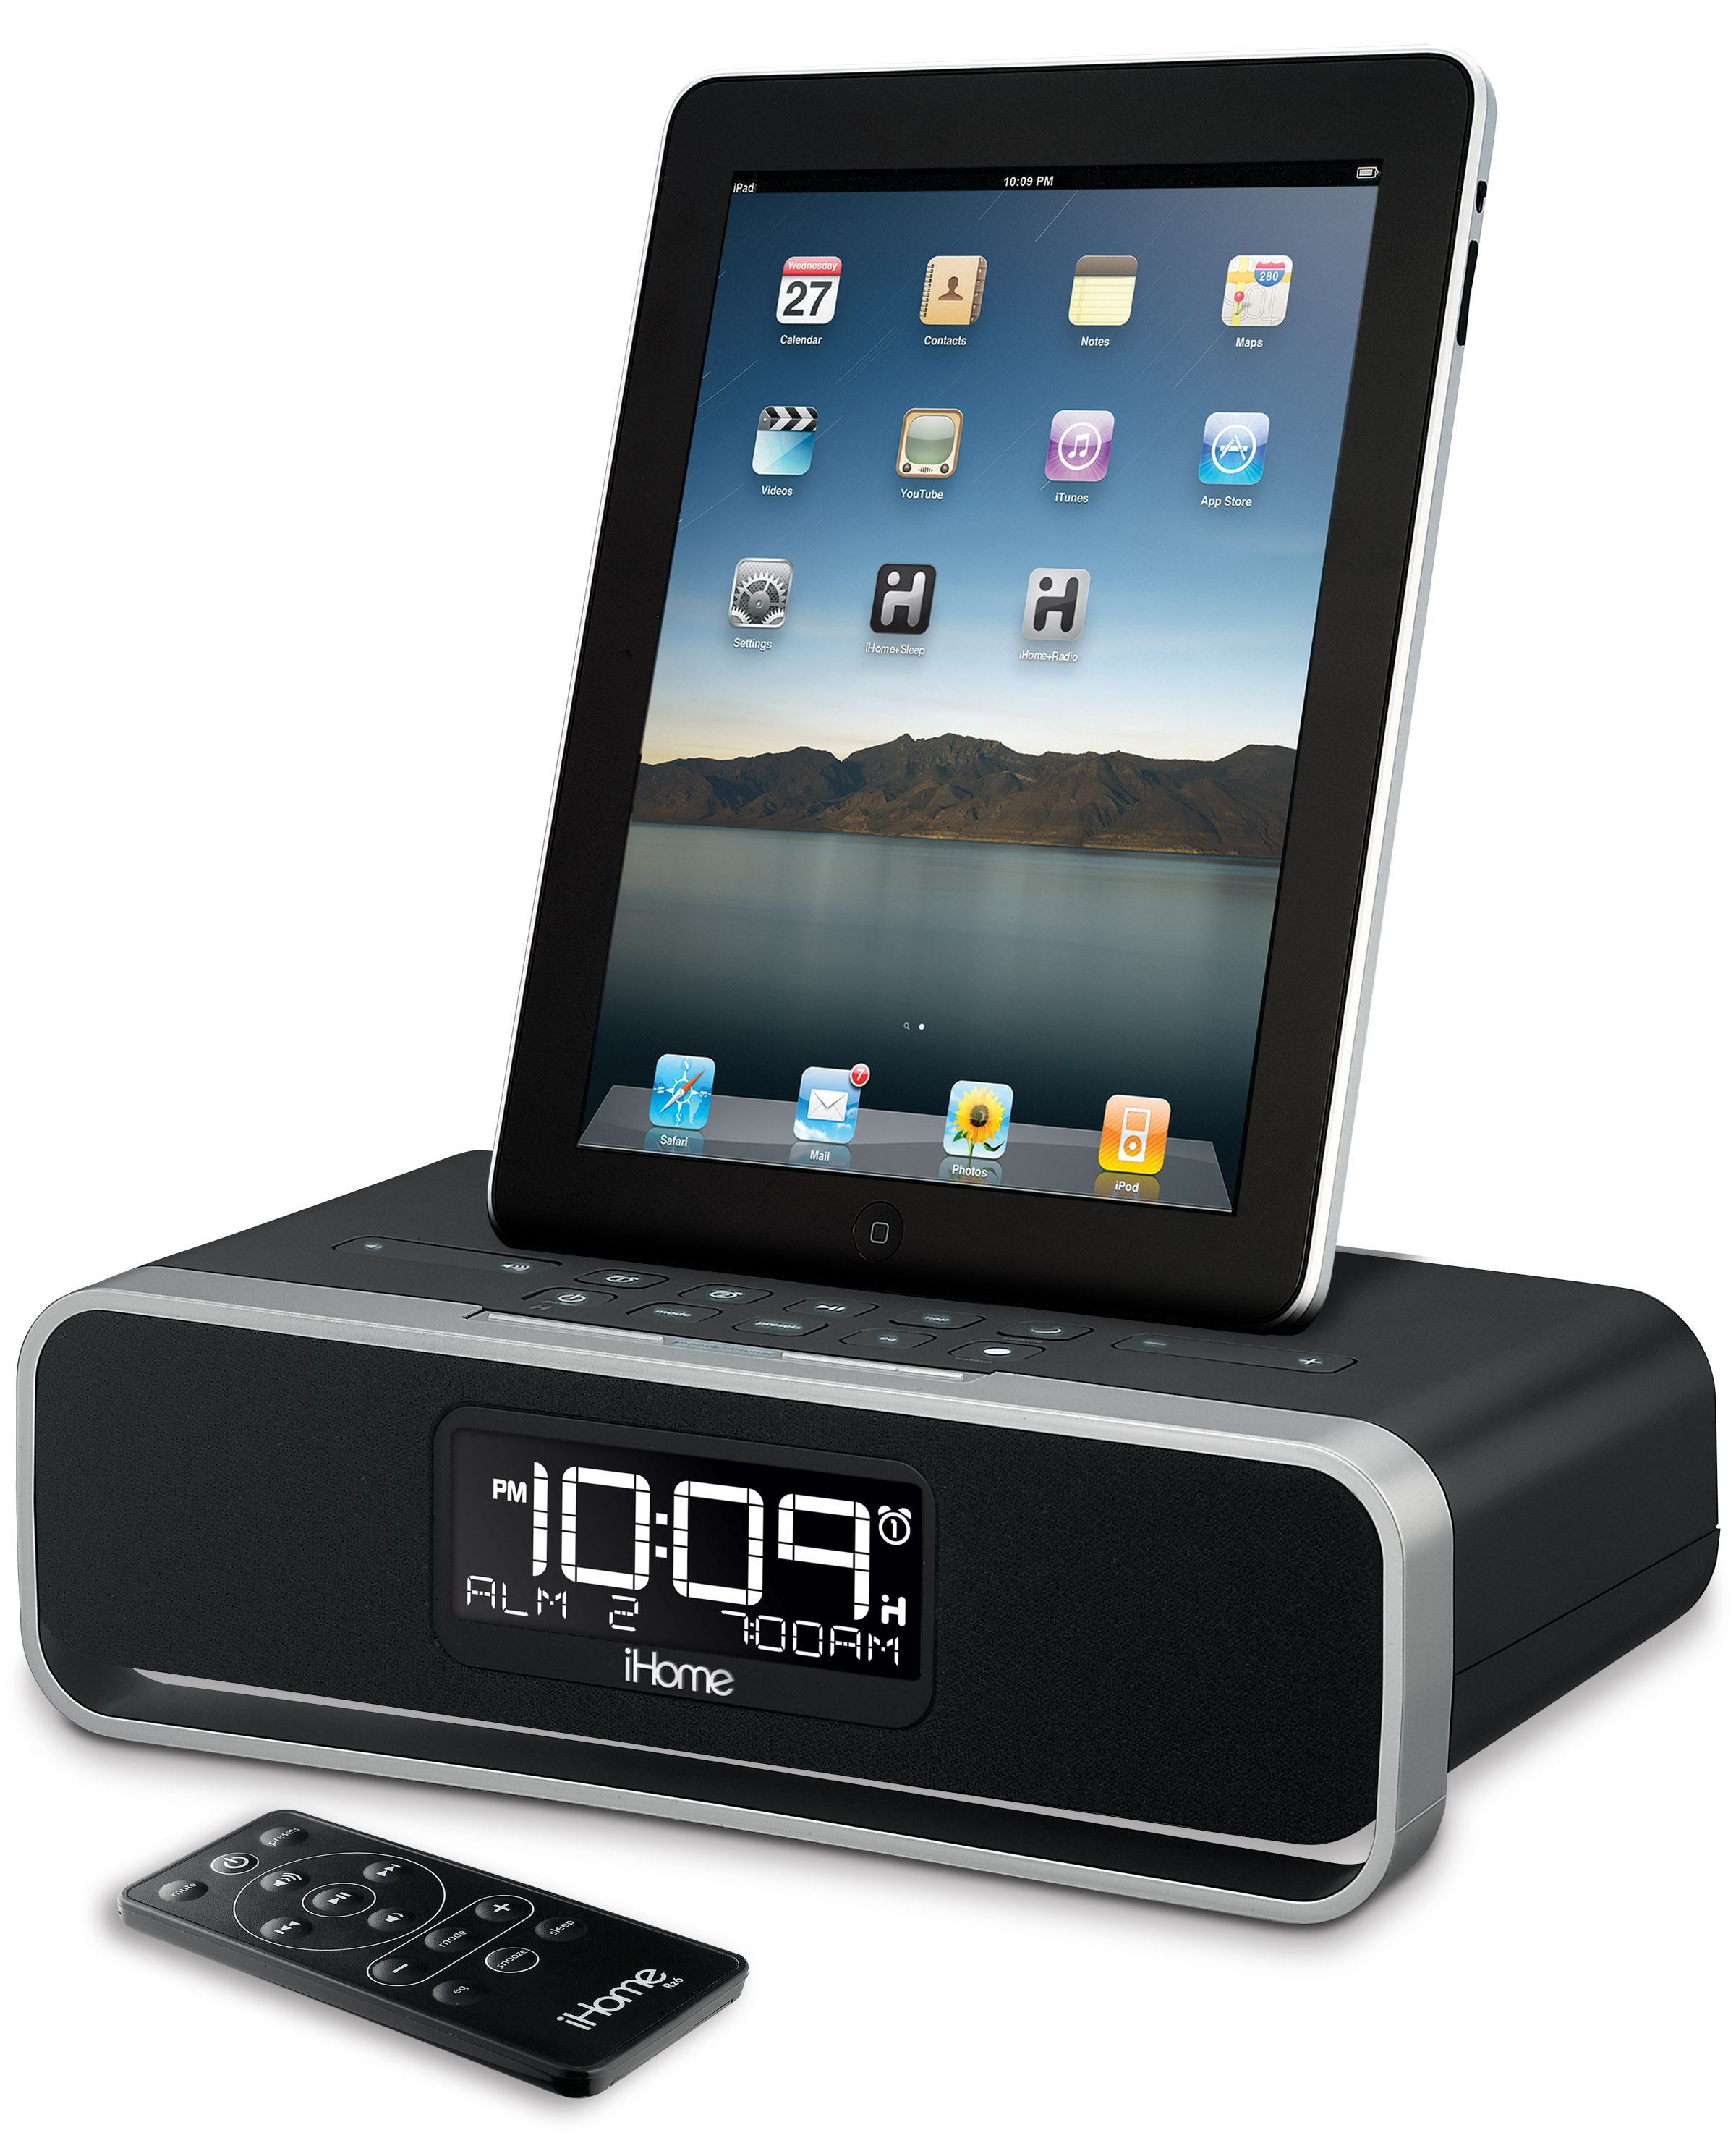 ihome id91 dual alarm clock radio for iphone ipod ipad. Black Bedroom Furniture Sets. Home Design Ideas